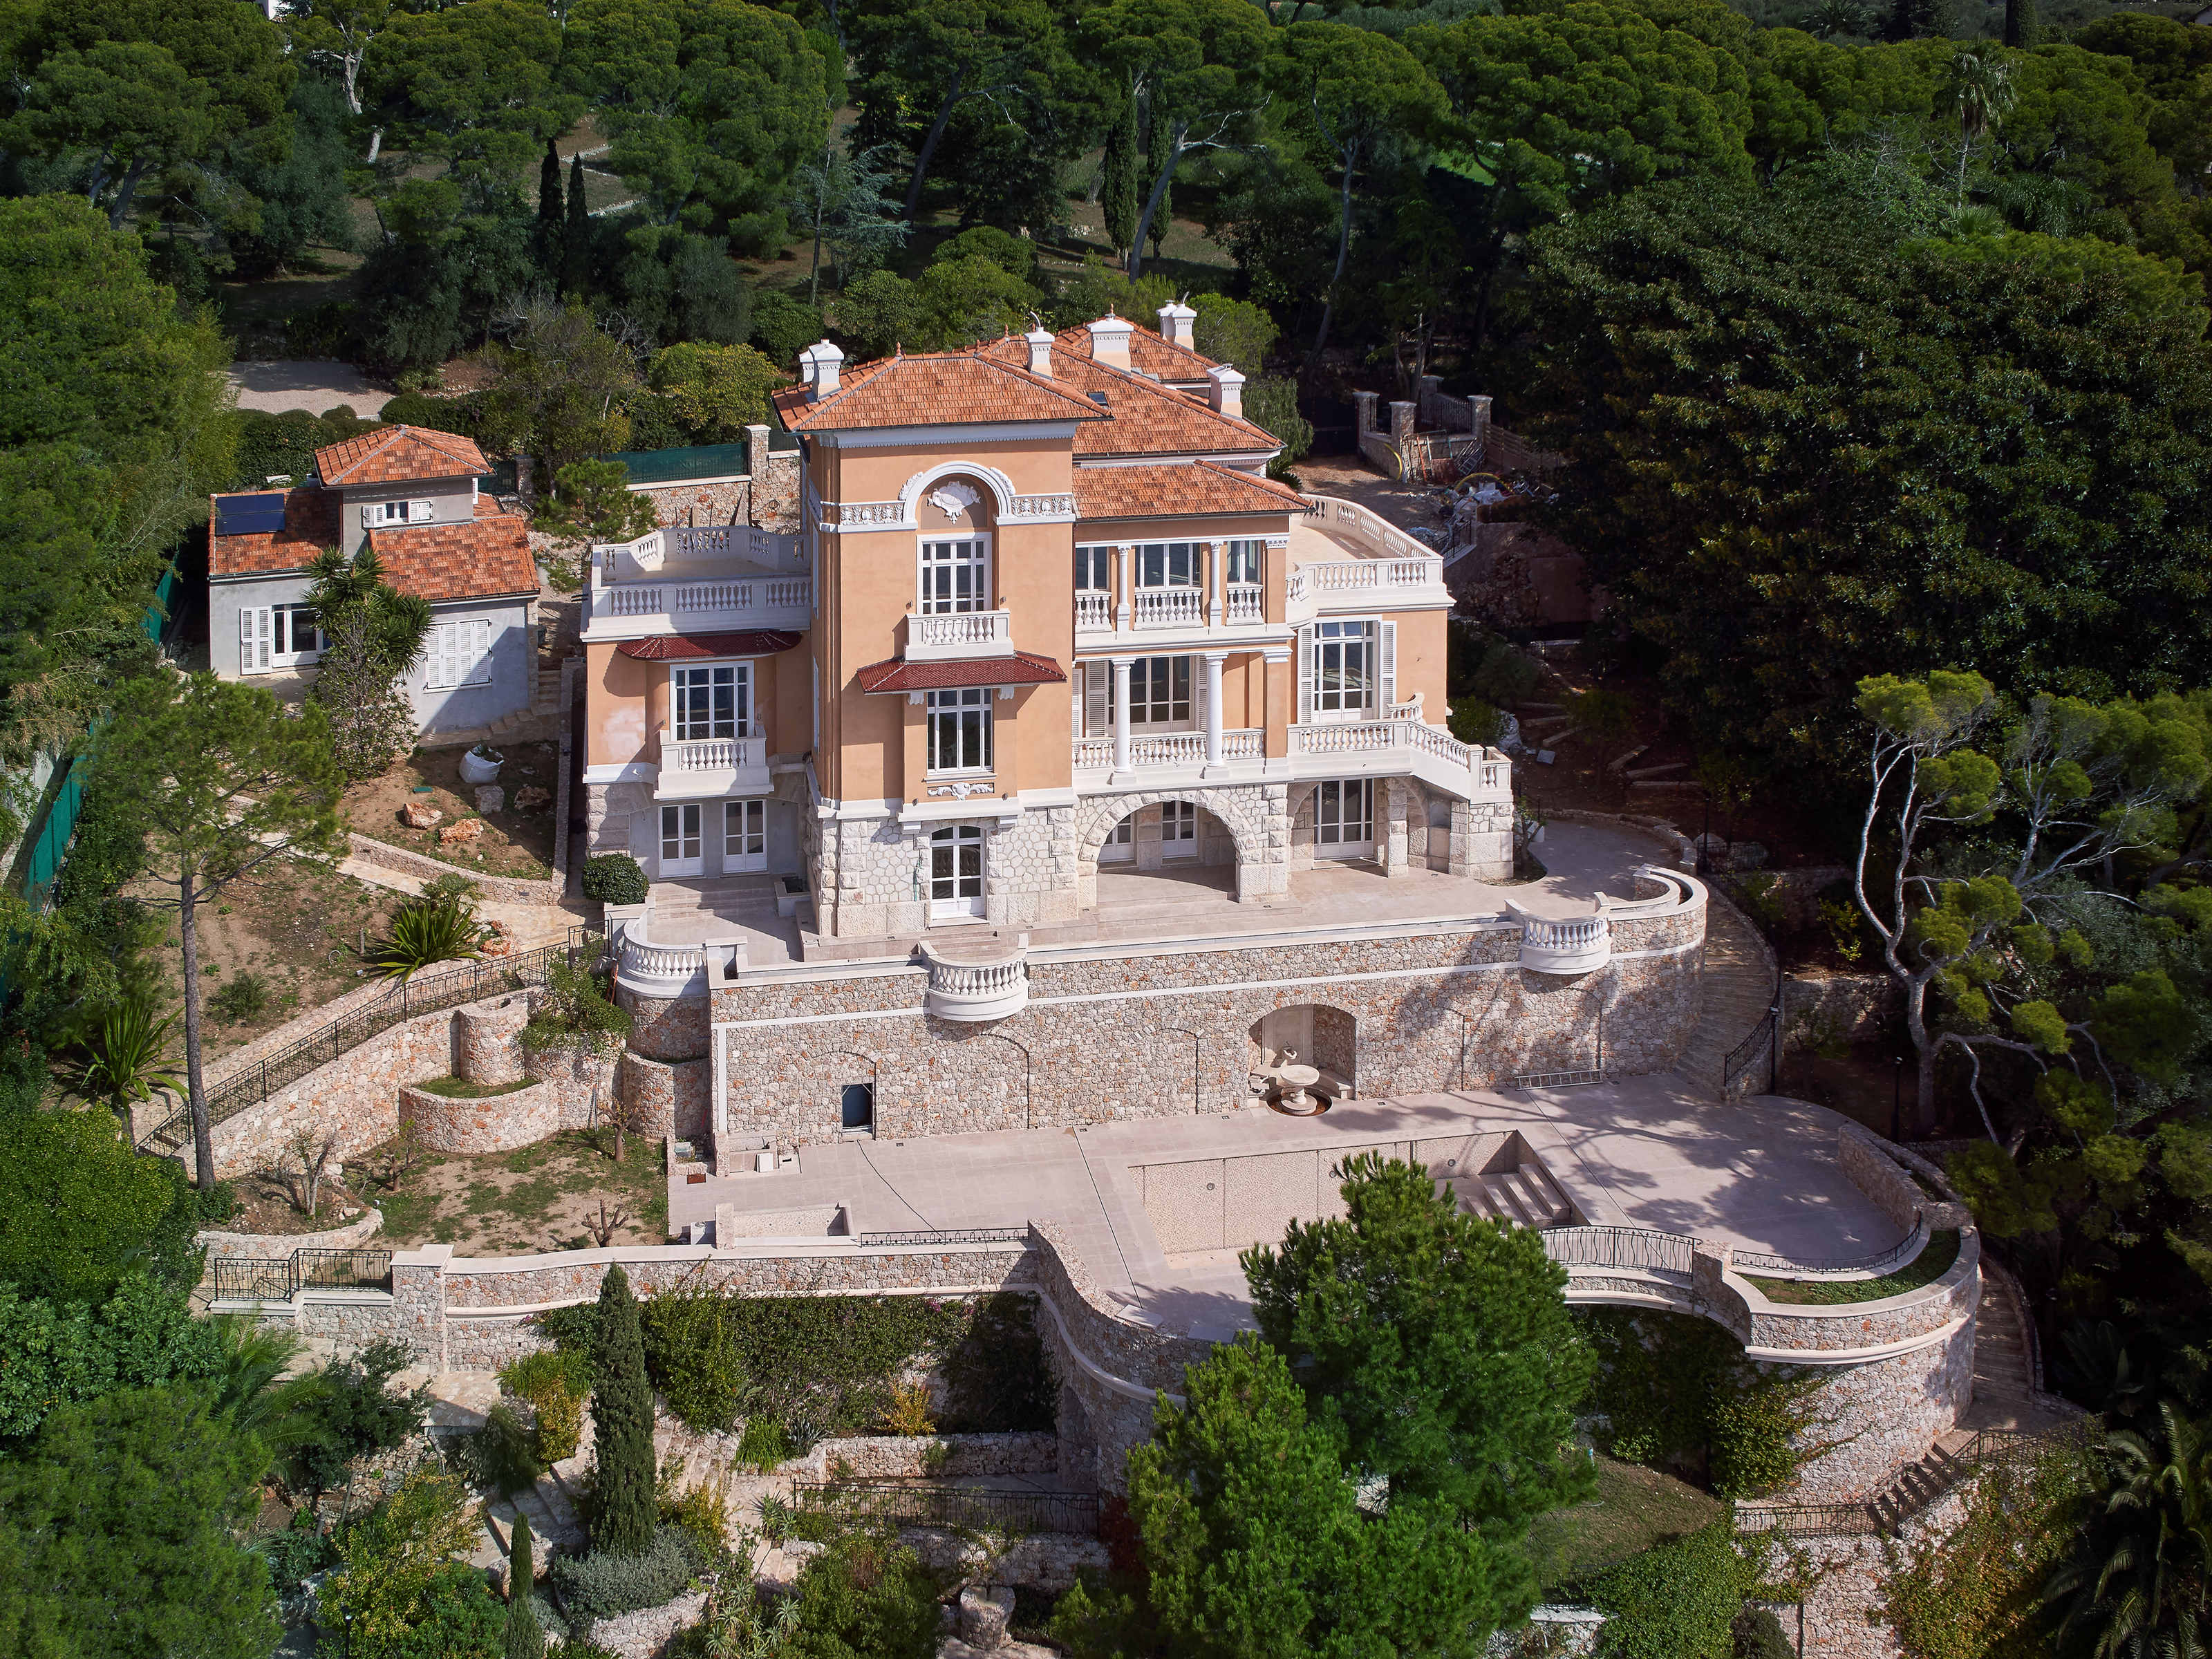 Other Residential for Sale at Hotel Particulier Roquebrune Cap Martin Roquebrune Cap Martin, Provence-Alpes-Cote D'Azur 06190 France